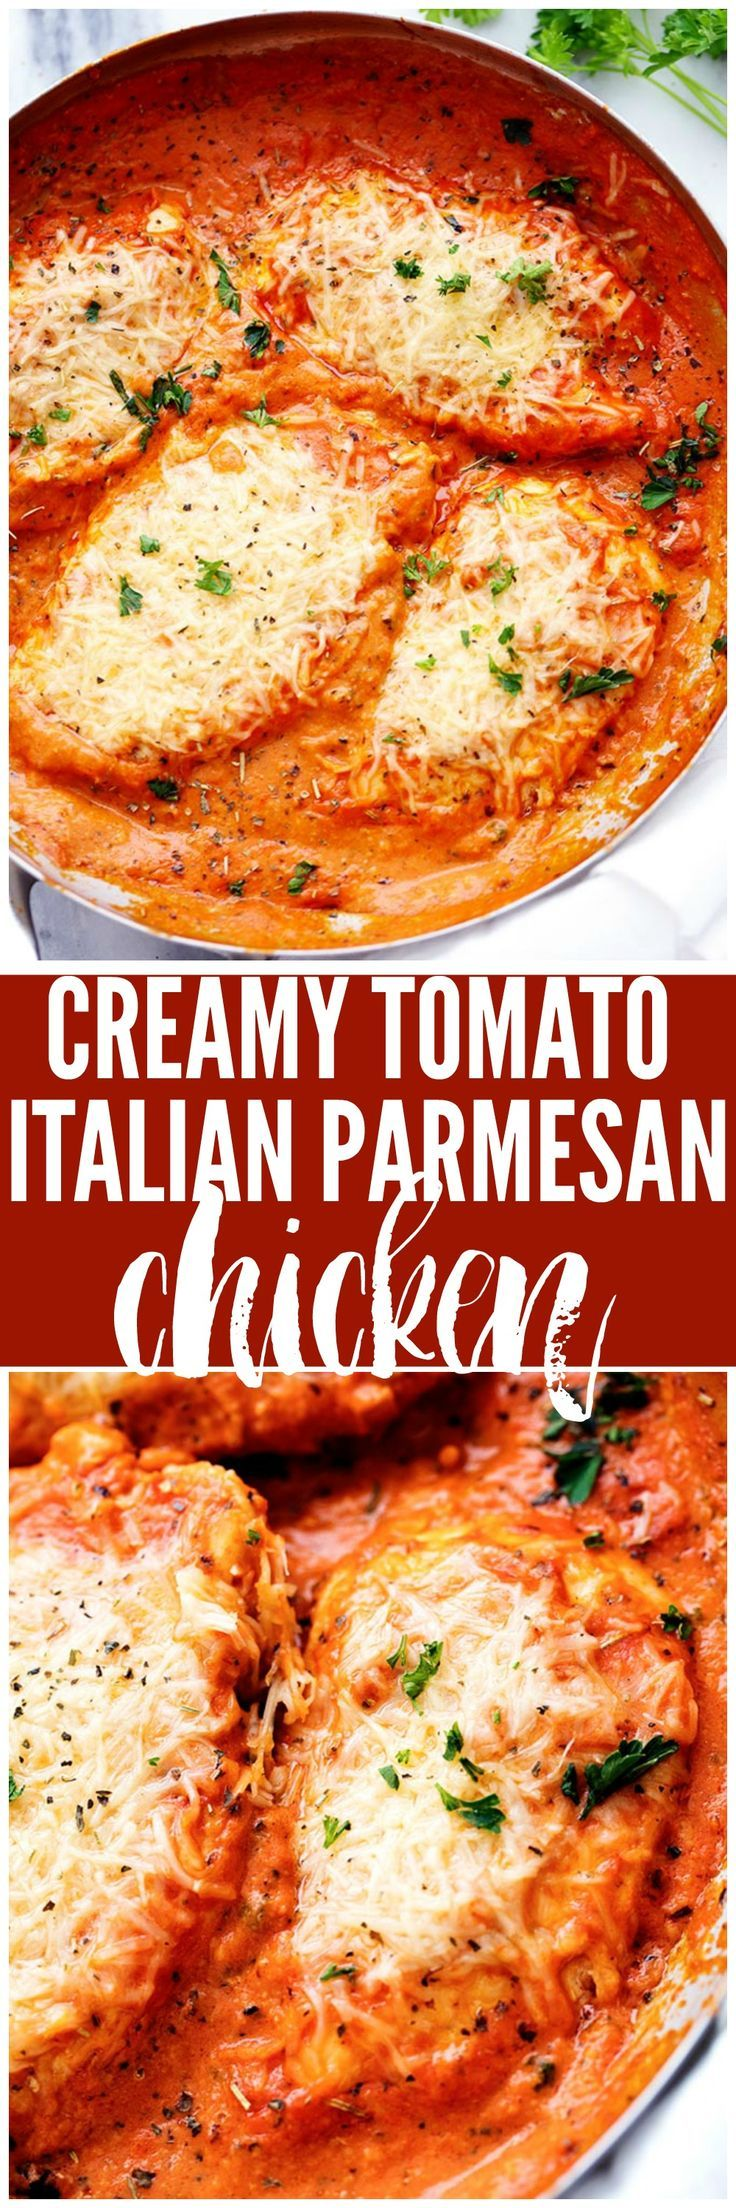 awesome Creamy Tomato Italian Parmesan Chicken | The Recipe Criticby http://dezdemon99-recipes4u.gdn